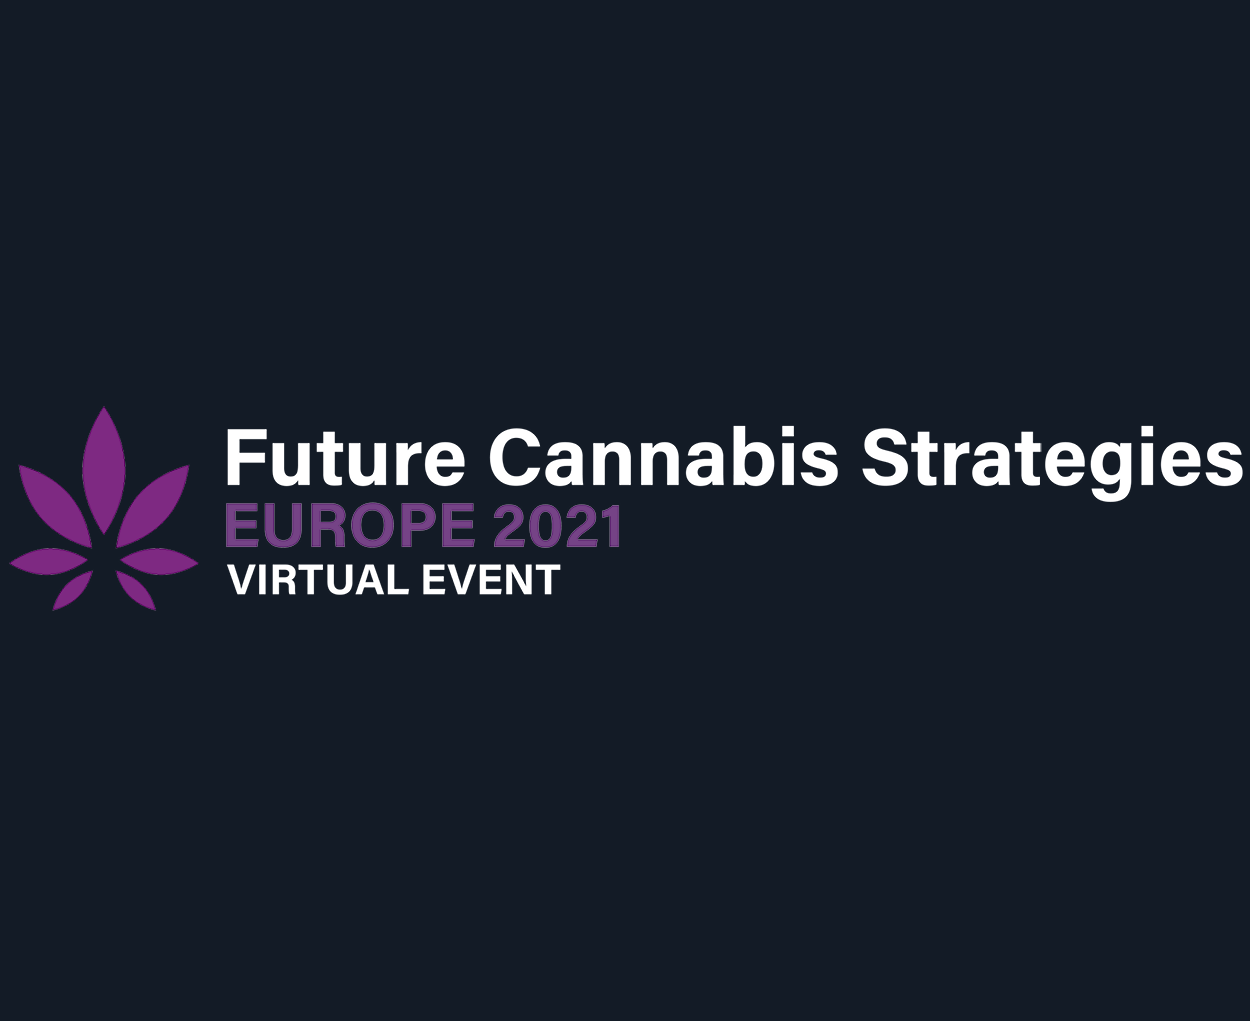 Future Cannabis Strategy Conference Europe 2021